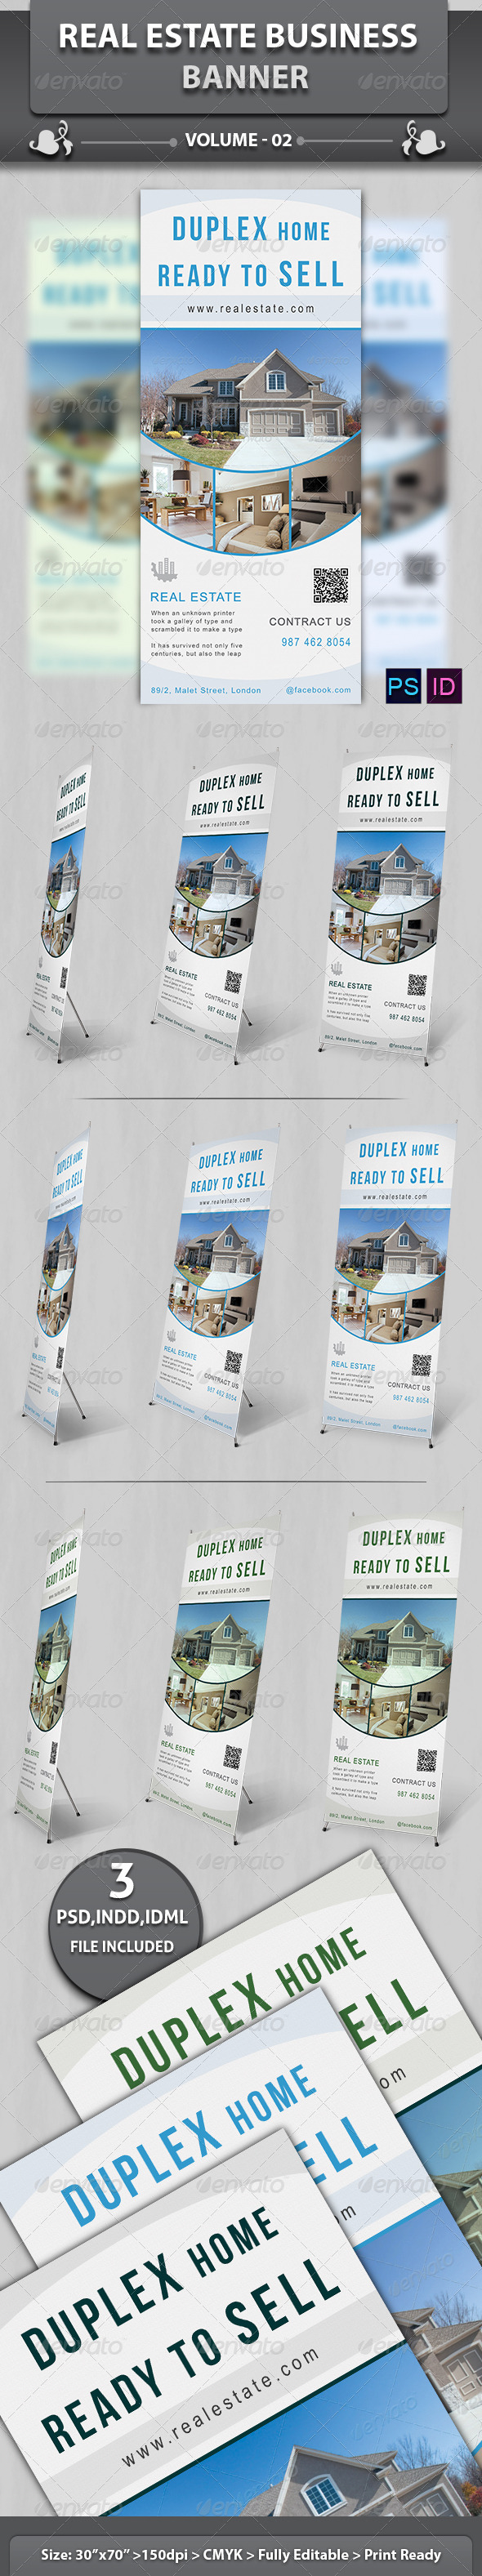 Real Estate Business Banner | Volume 3 - Signage Print Templates